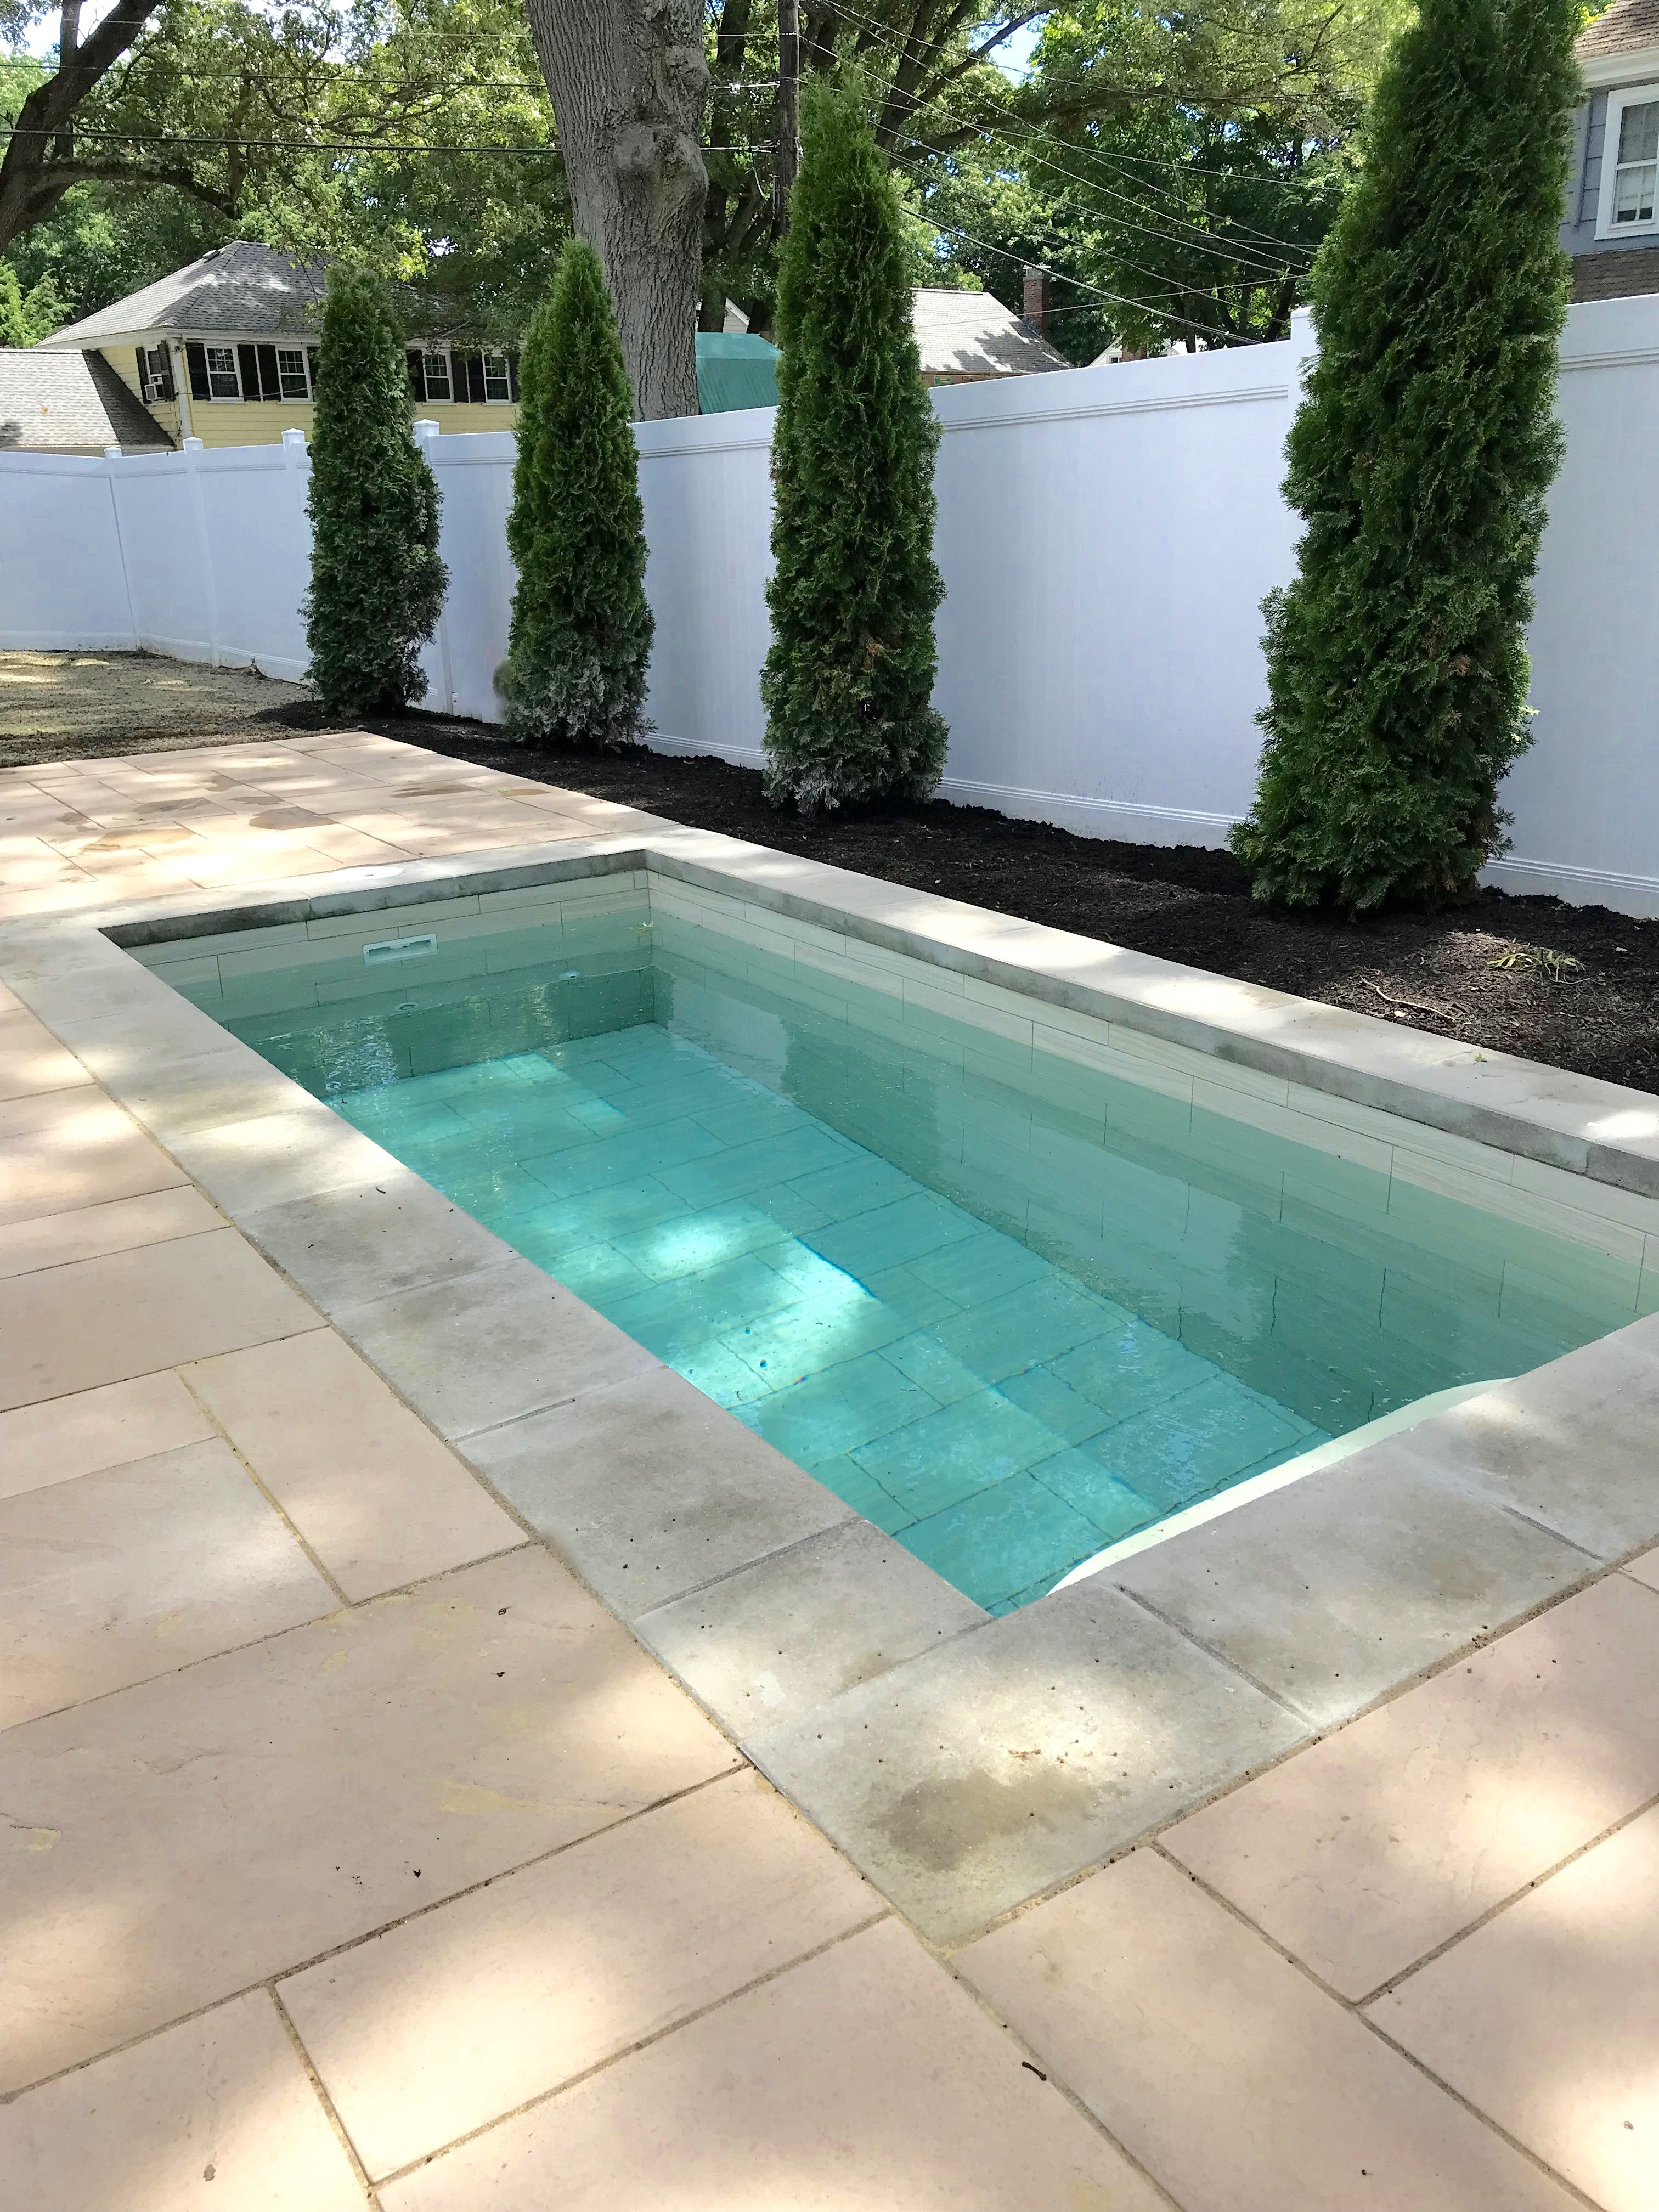 Flush Installation Of Ivory Soake Pool Perfect For Lounging Small Pool Design Small Pools Small Backyard Pools